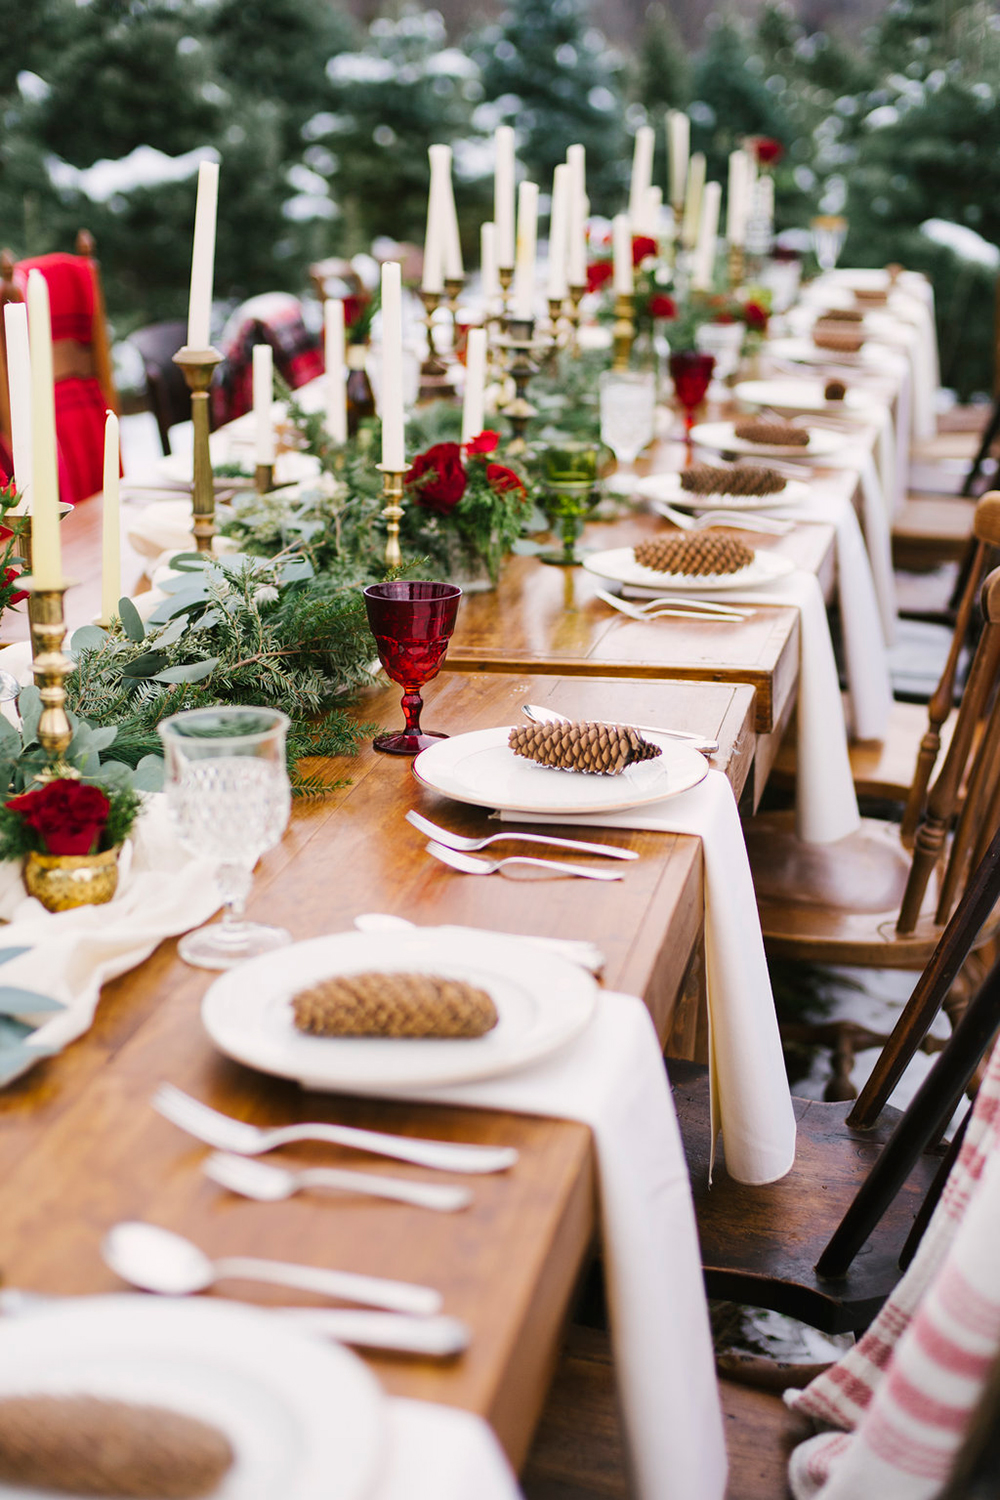 Candles (use soy or beeswax instead of parafin), pinecones, Christmas decs and greenery make a stunning table scape in this inspirational shoot on the  Ruffled Blog . Swap the out of season in the UK red roses for in season carnations, amaryllis or poinsettia.